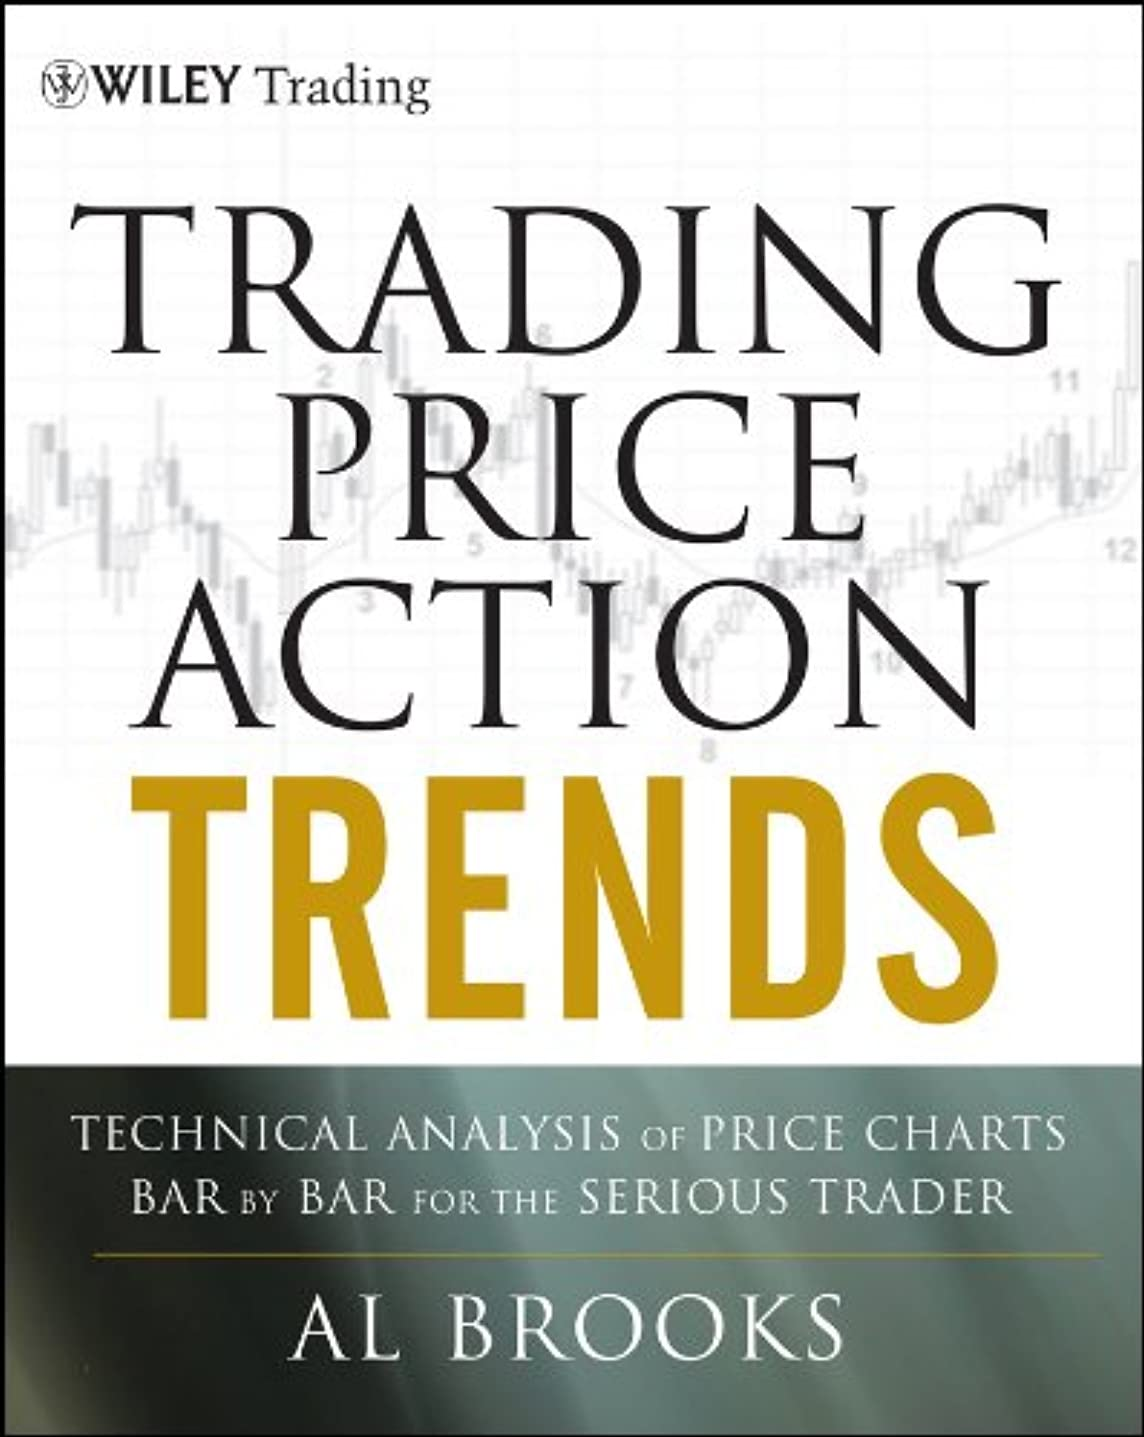 はさみごめんなさい十二Trading Price Action Trends: Technical Analysis of Price Charts Bar by Bar for the Serious Trader (Wiley Trading Book 540) (English Edition)